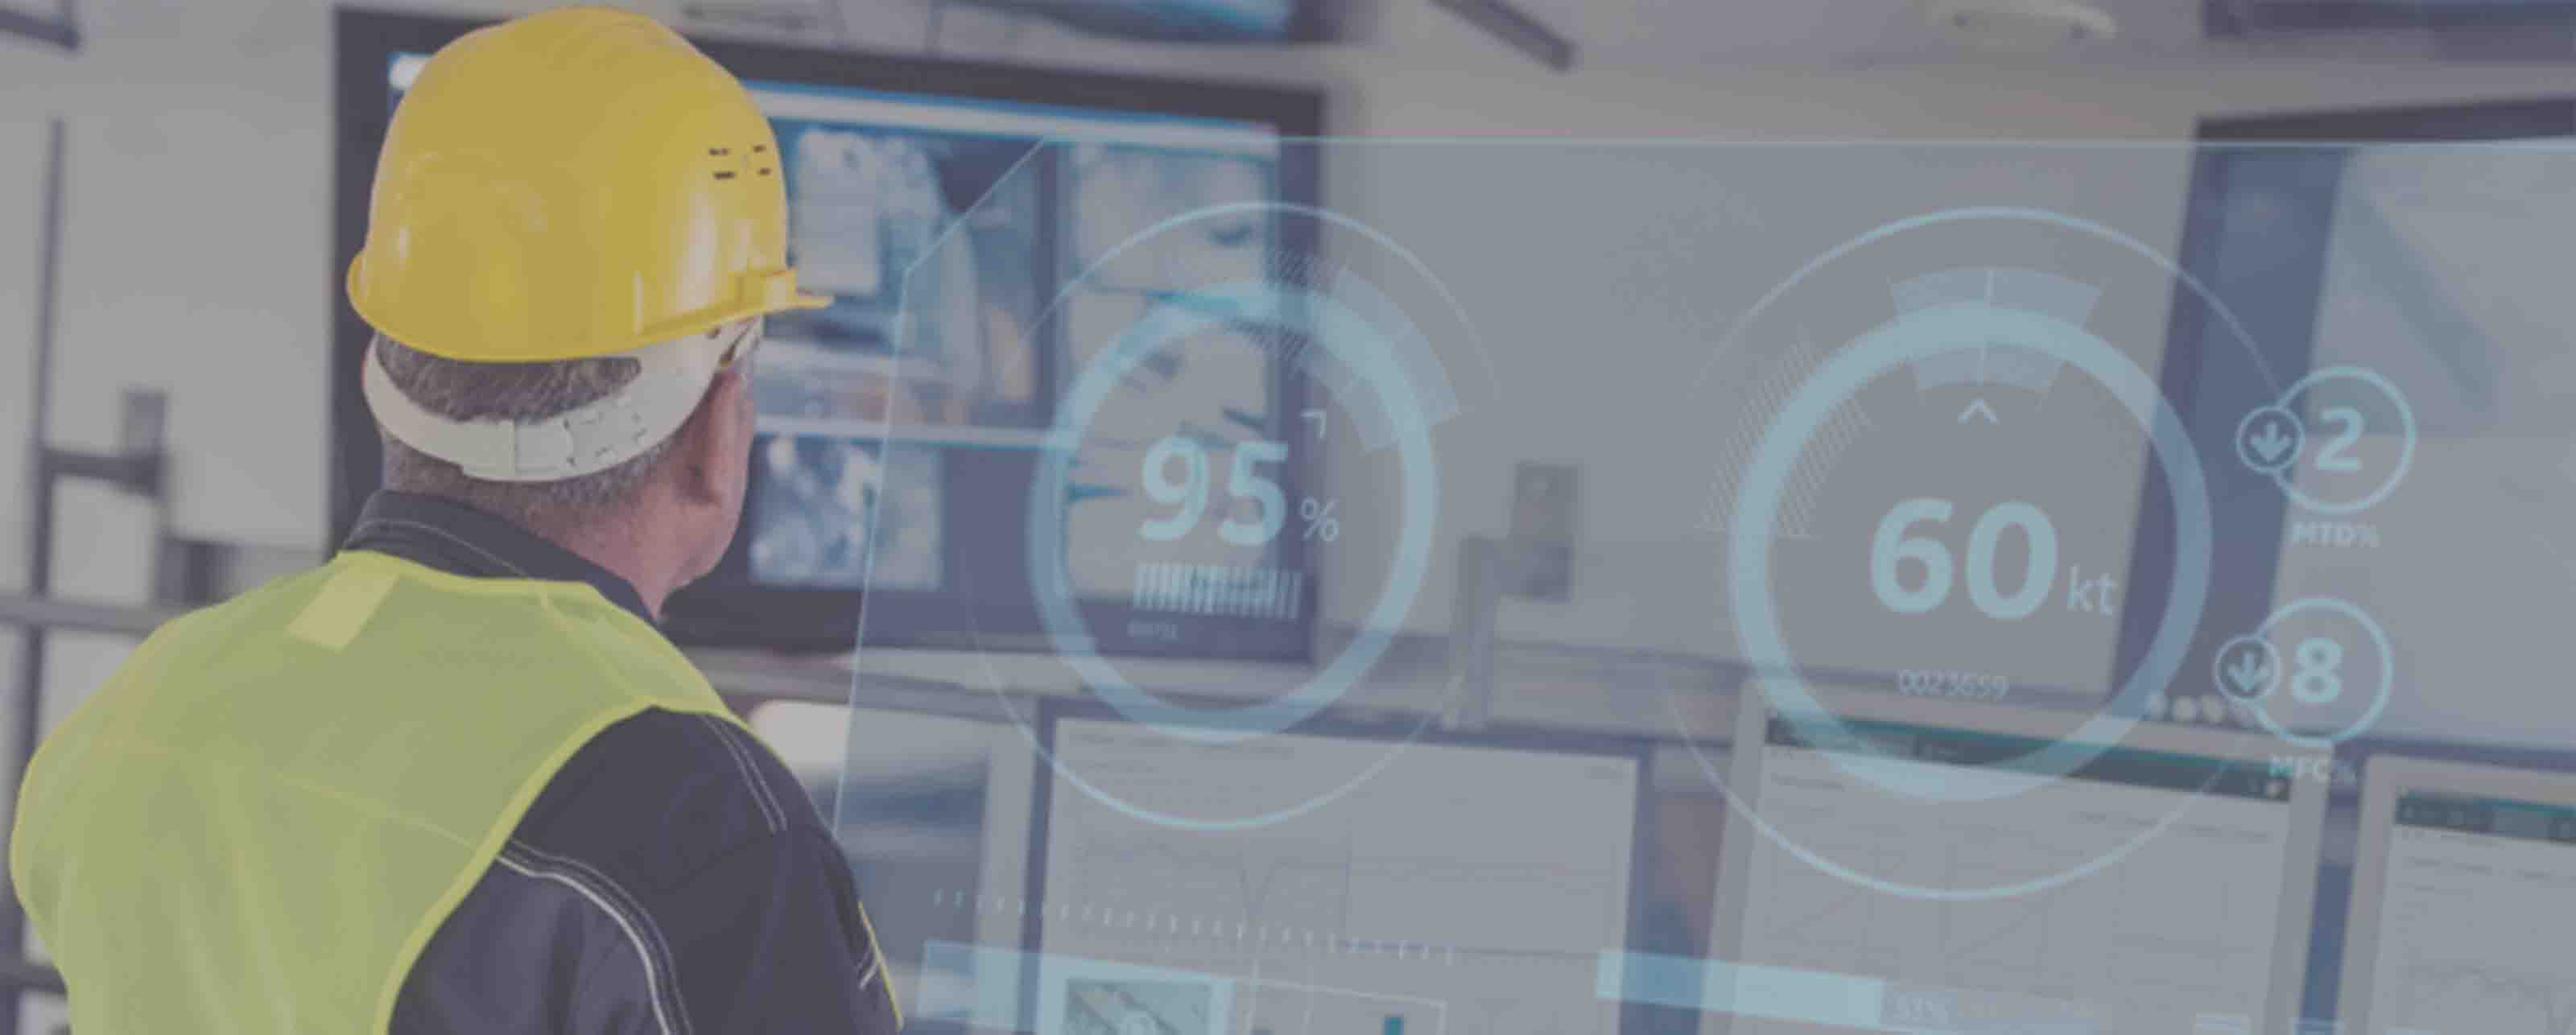 Predictive analytics in a control room helps optimize industrial asset performance